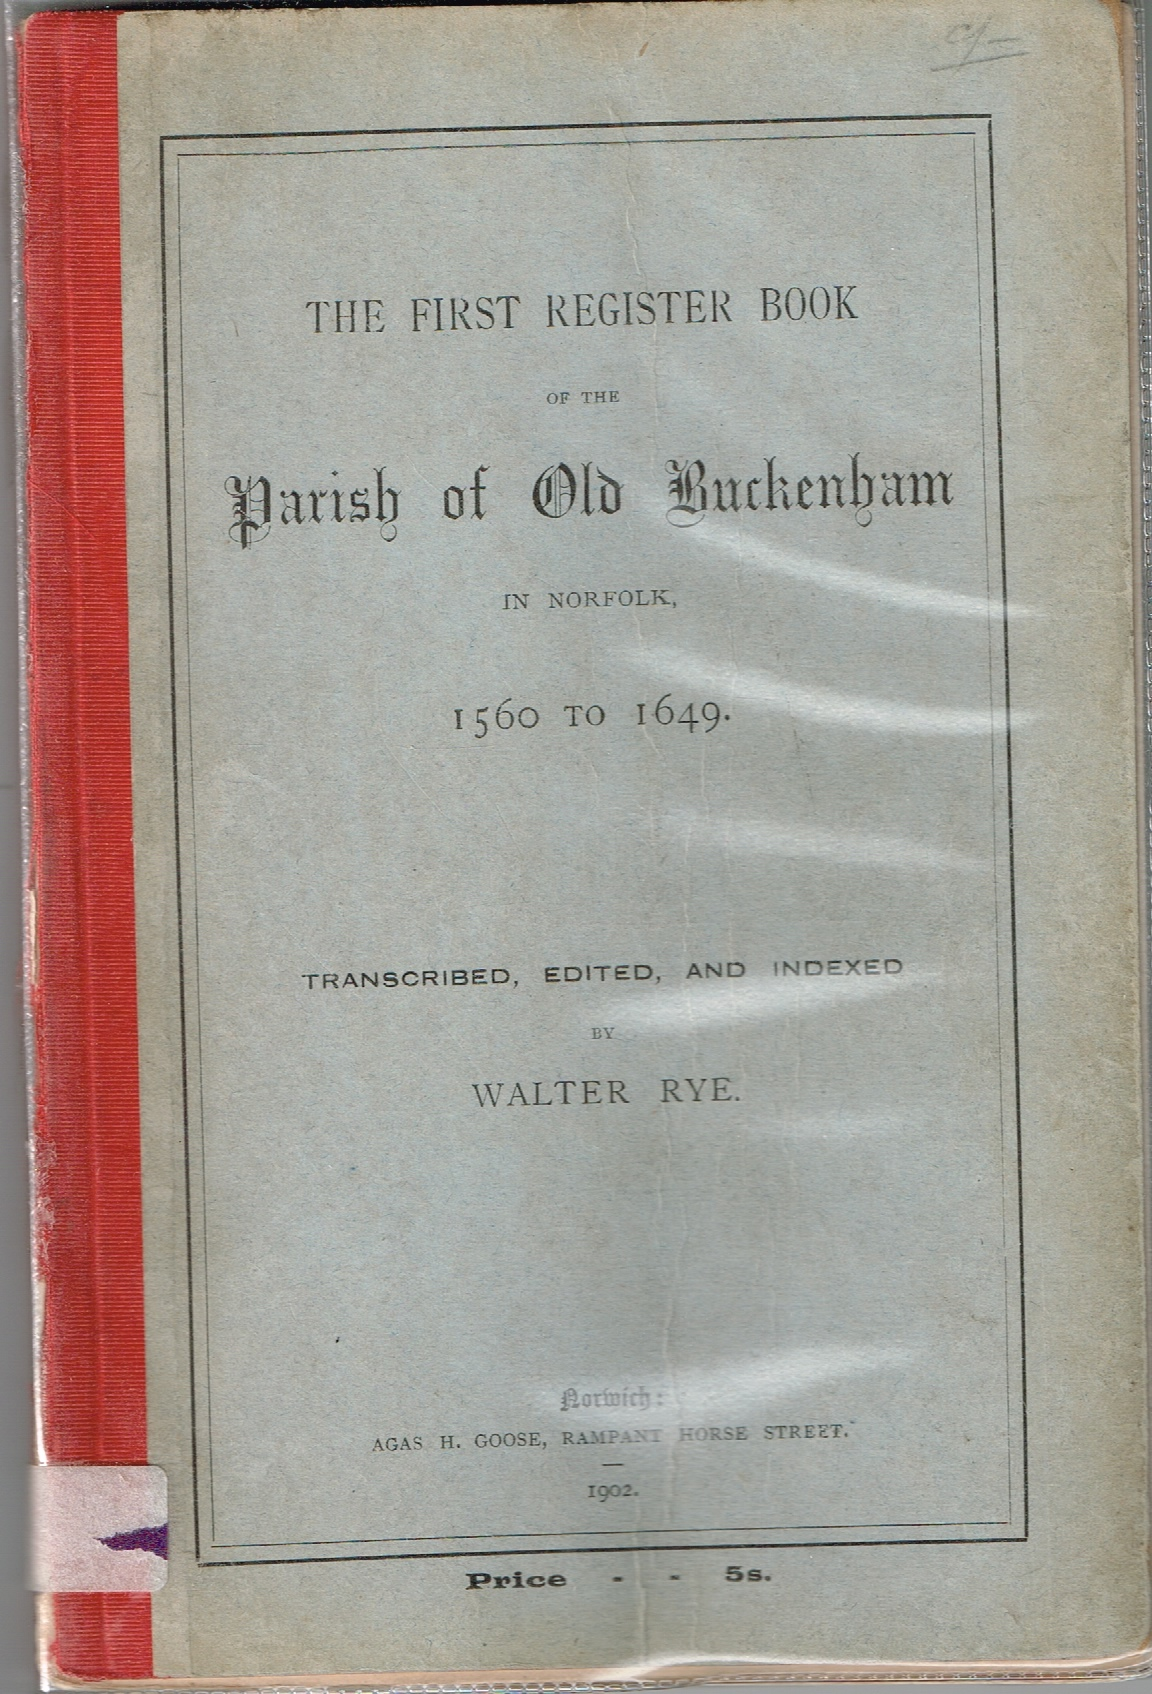 Image for The First Register Book of the Parish of Old Buckenham in Norfolk, 1560 to 1649.